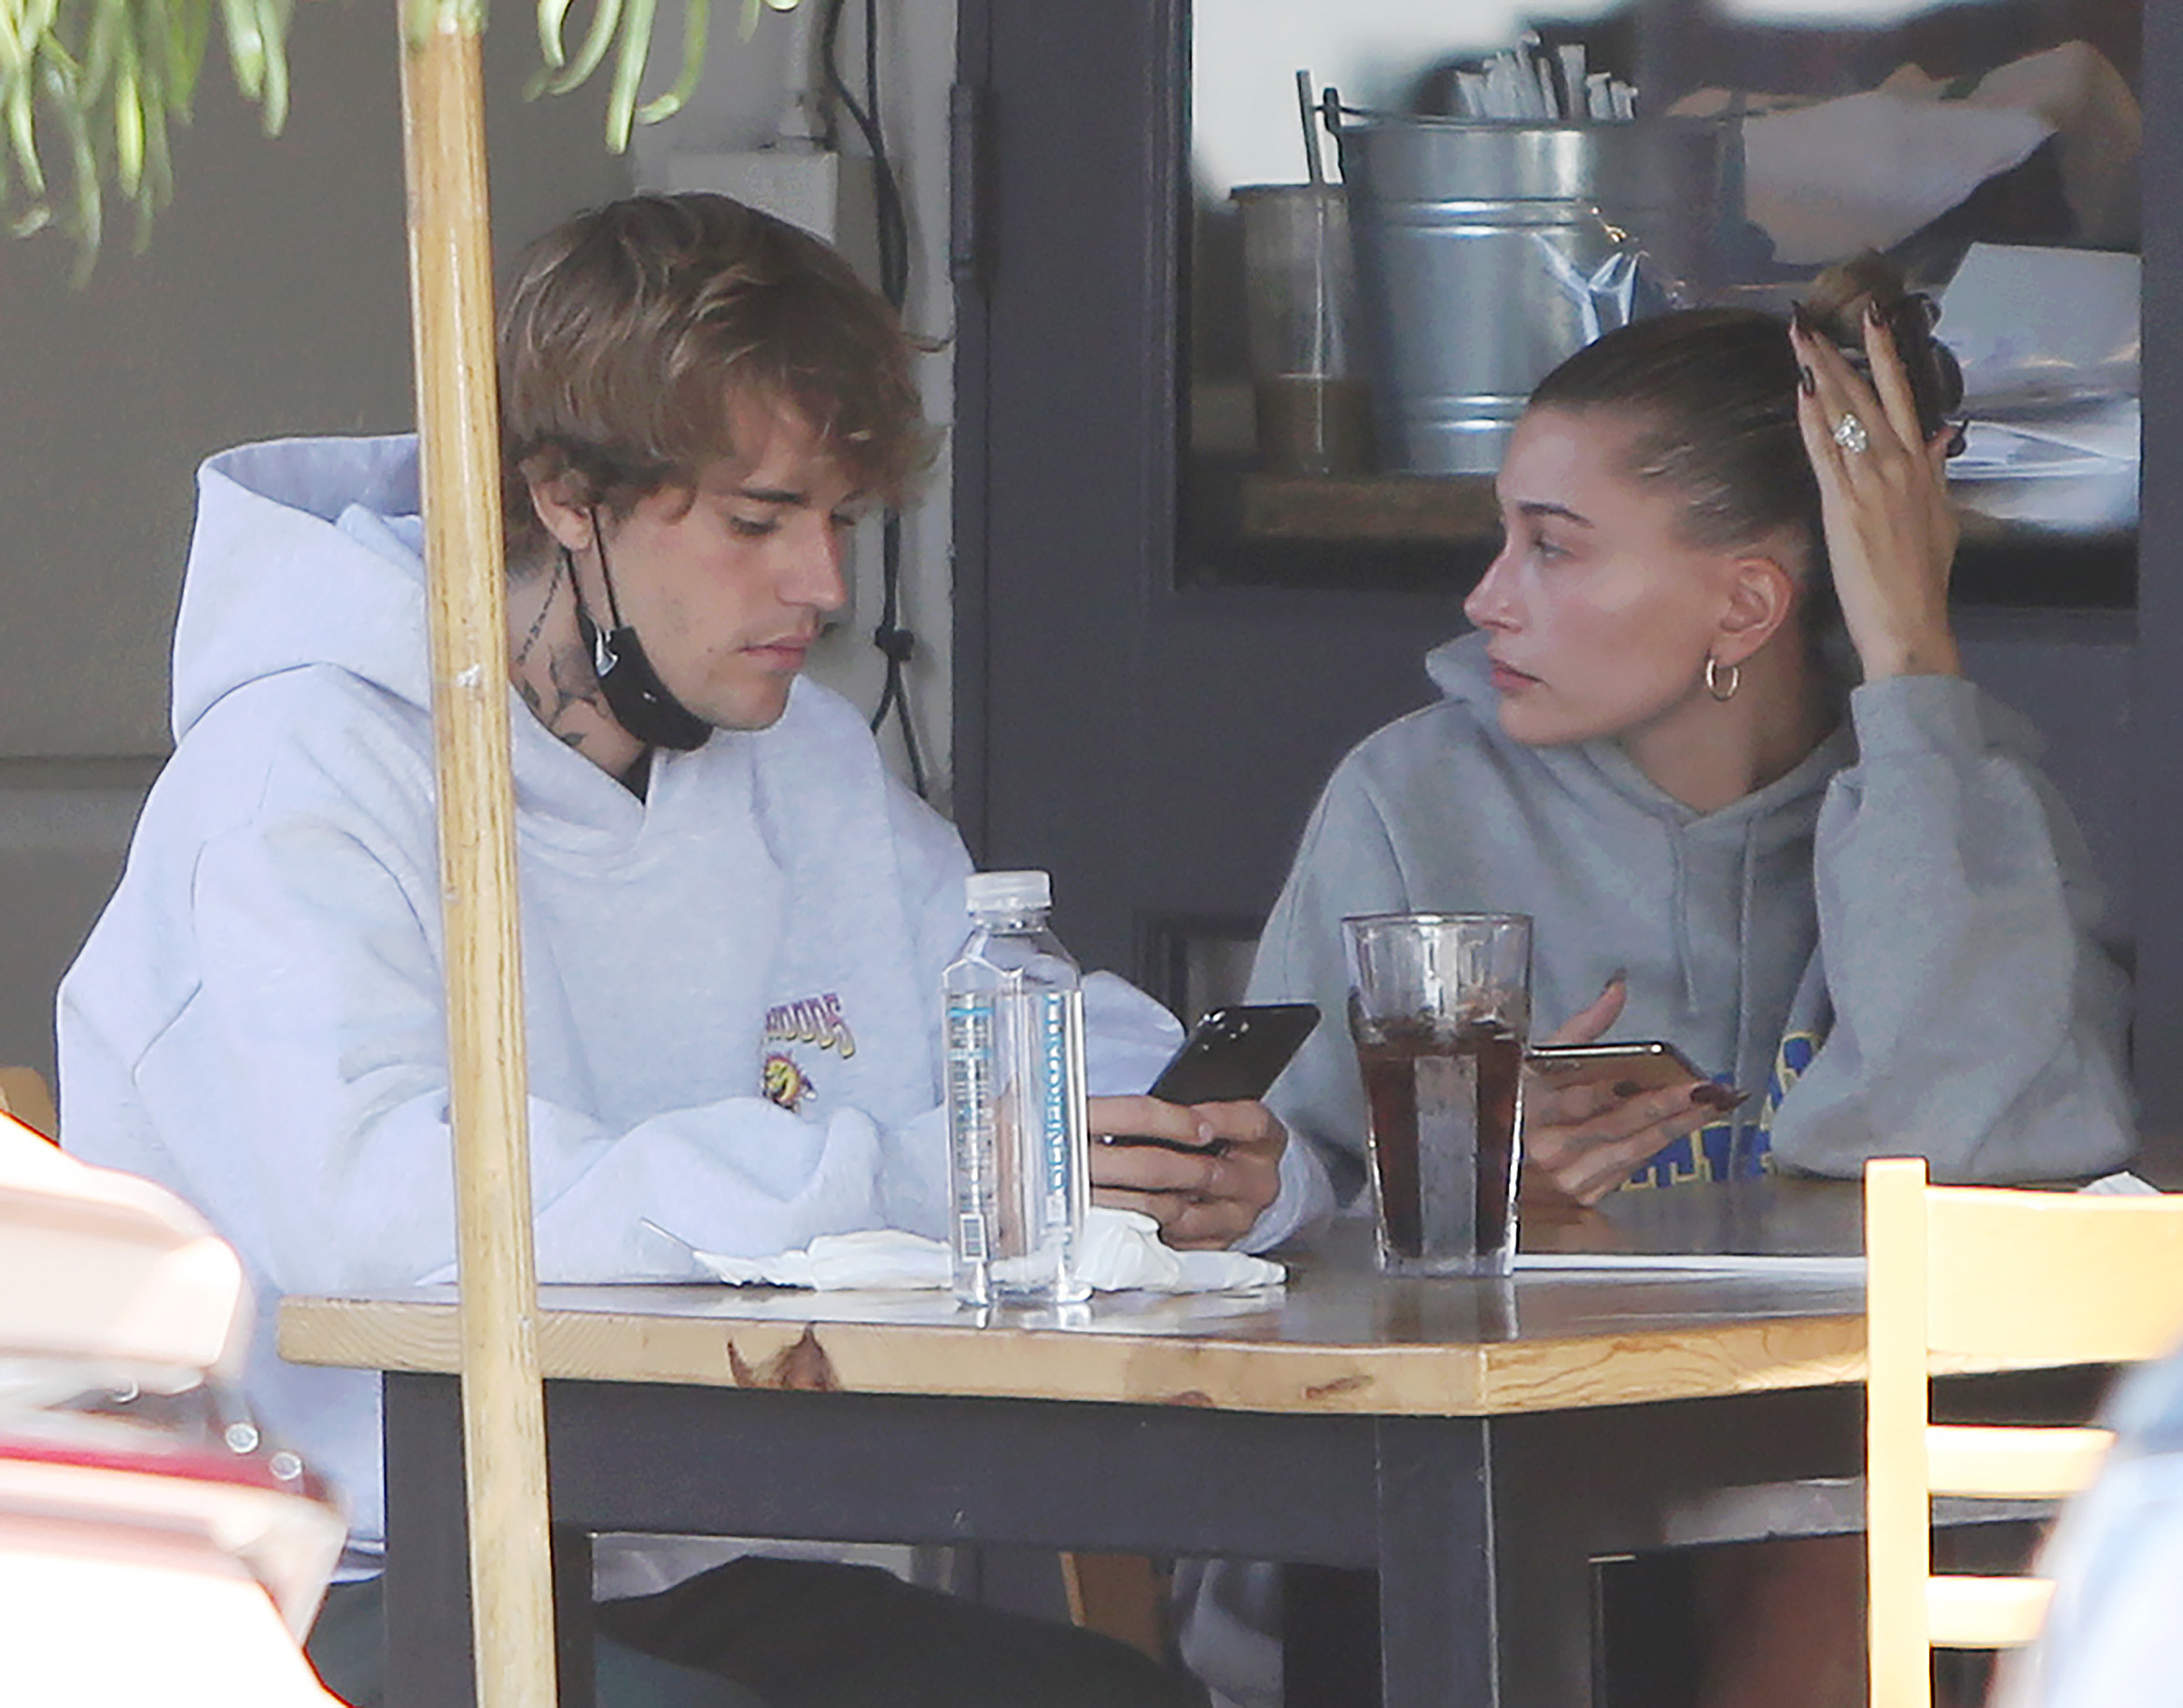 Justin sitting with his wife, Hailey Bieber, at a restaurant outdoors